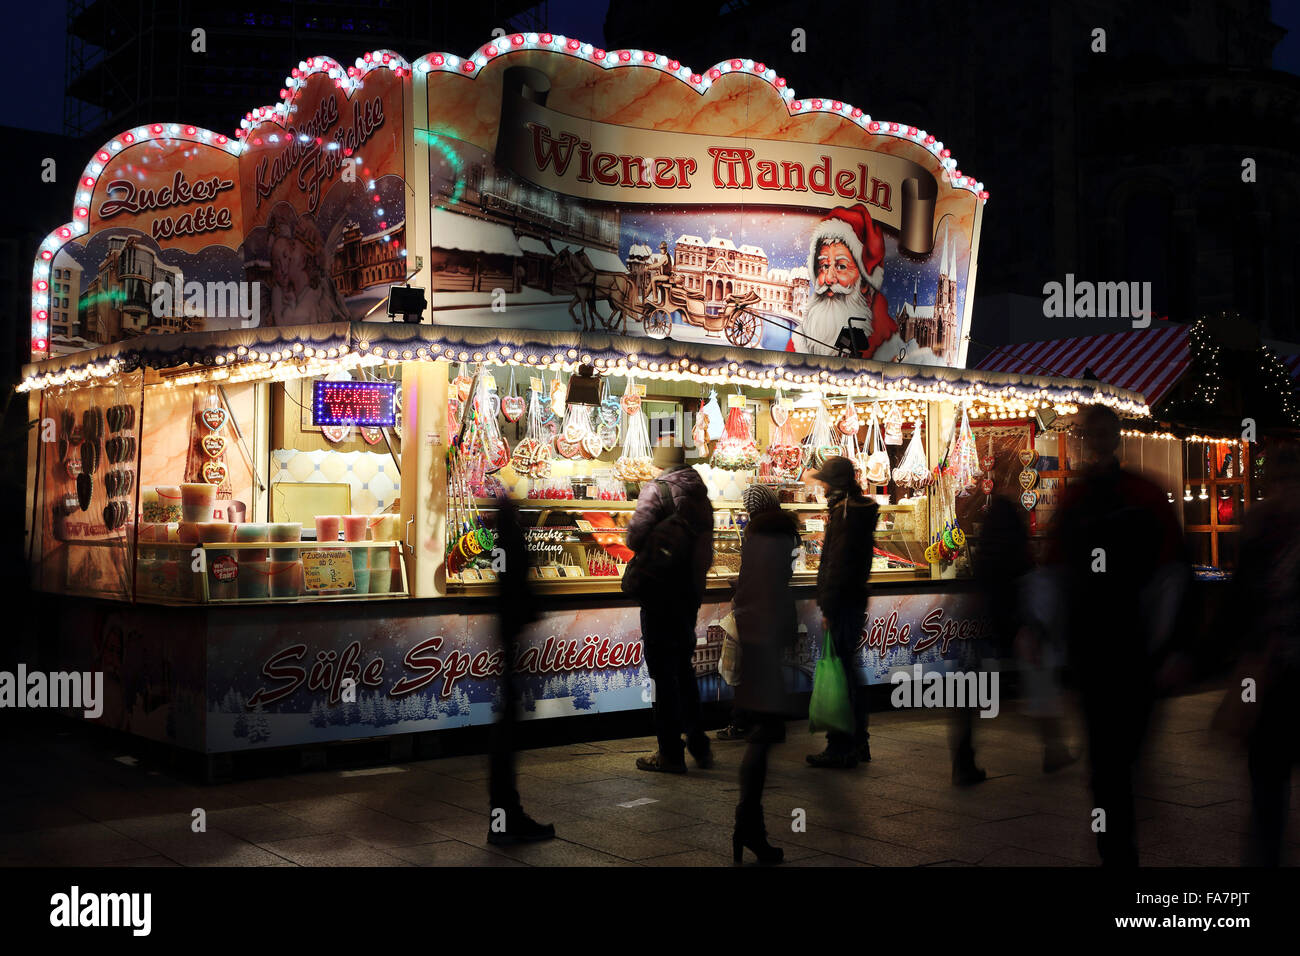 A sweets and nuts stall at the City Weihnachtsmarkt am Gedachtniskirche Christmas market on Ku'damm in Berlin, Germany. Stock Photo